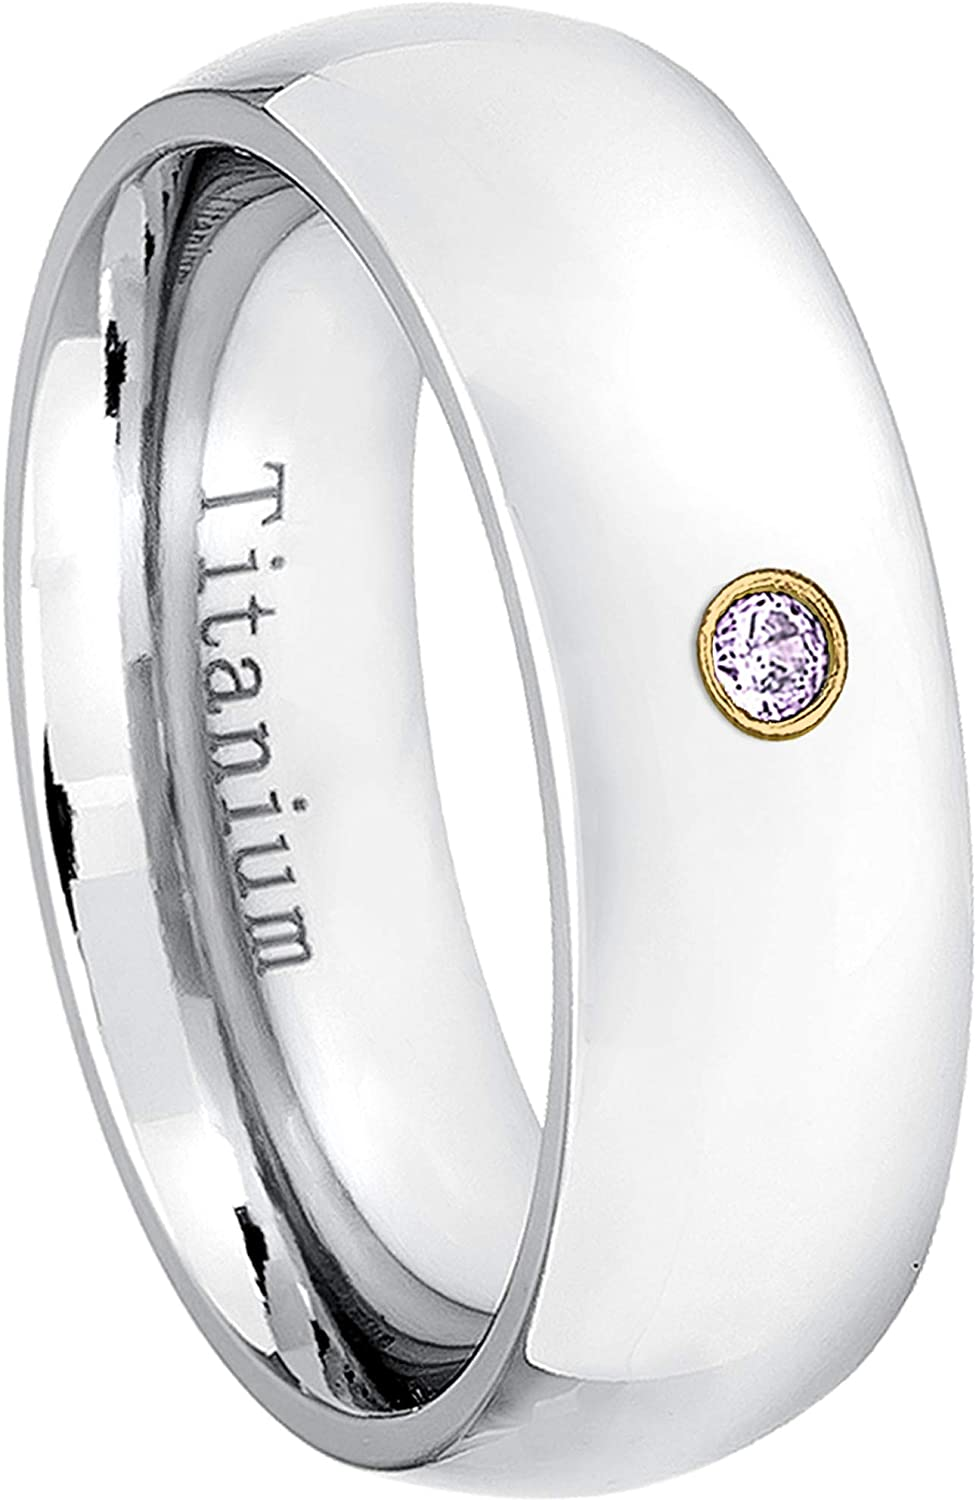 0.07ct Diamond Solitaire Titanium Ring 7MM Comfort Fit Polished Dome White Titanium Wedding Band April Birthstone Ring